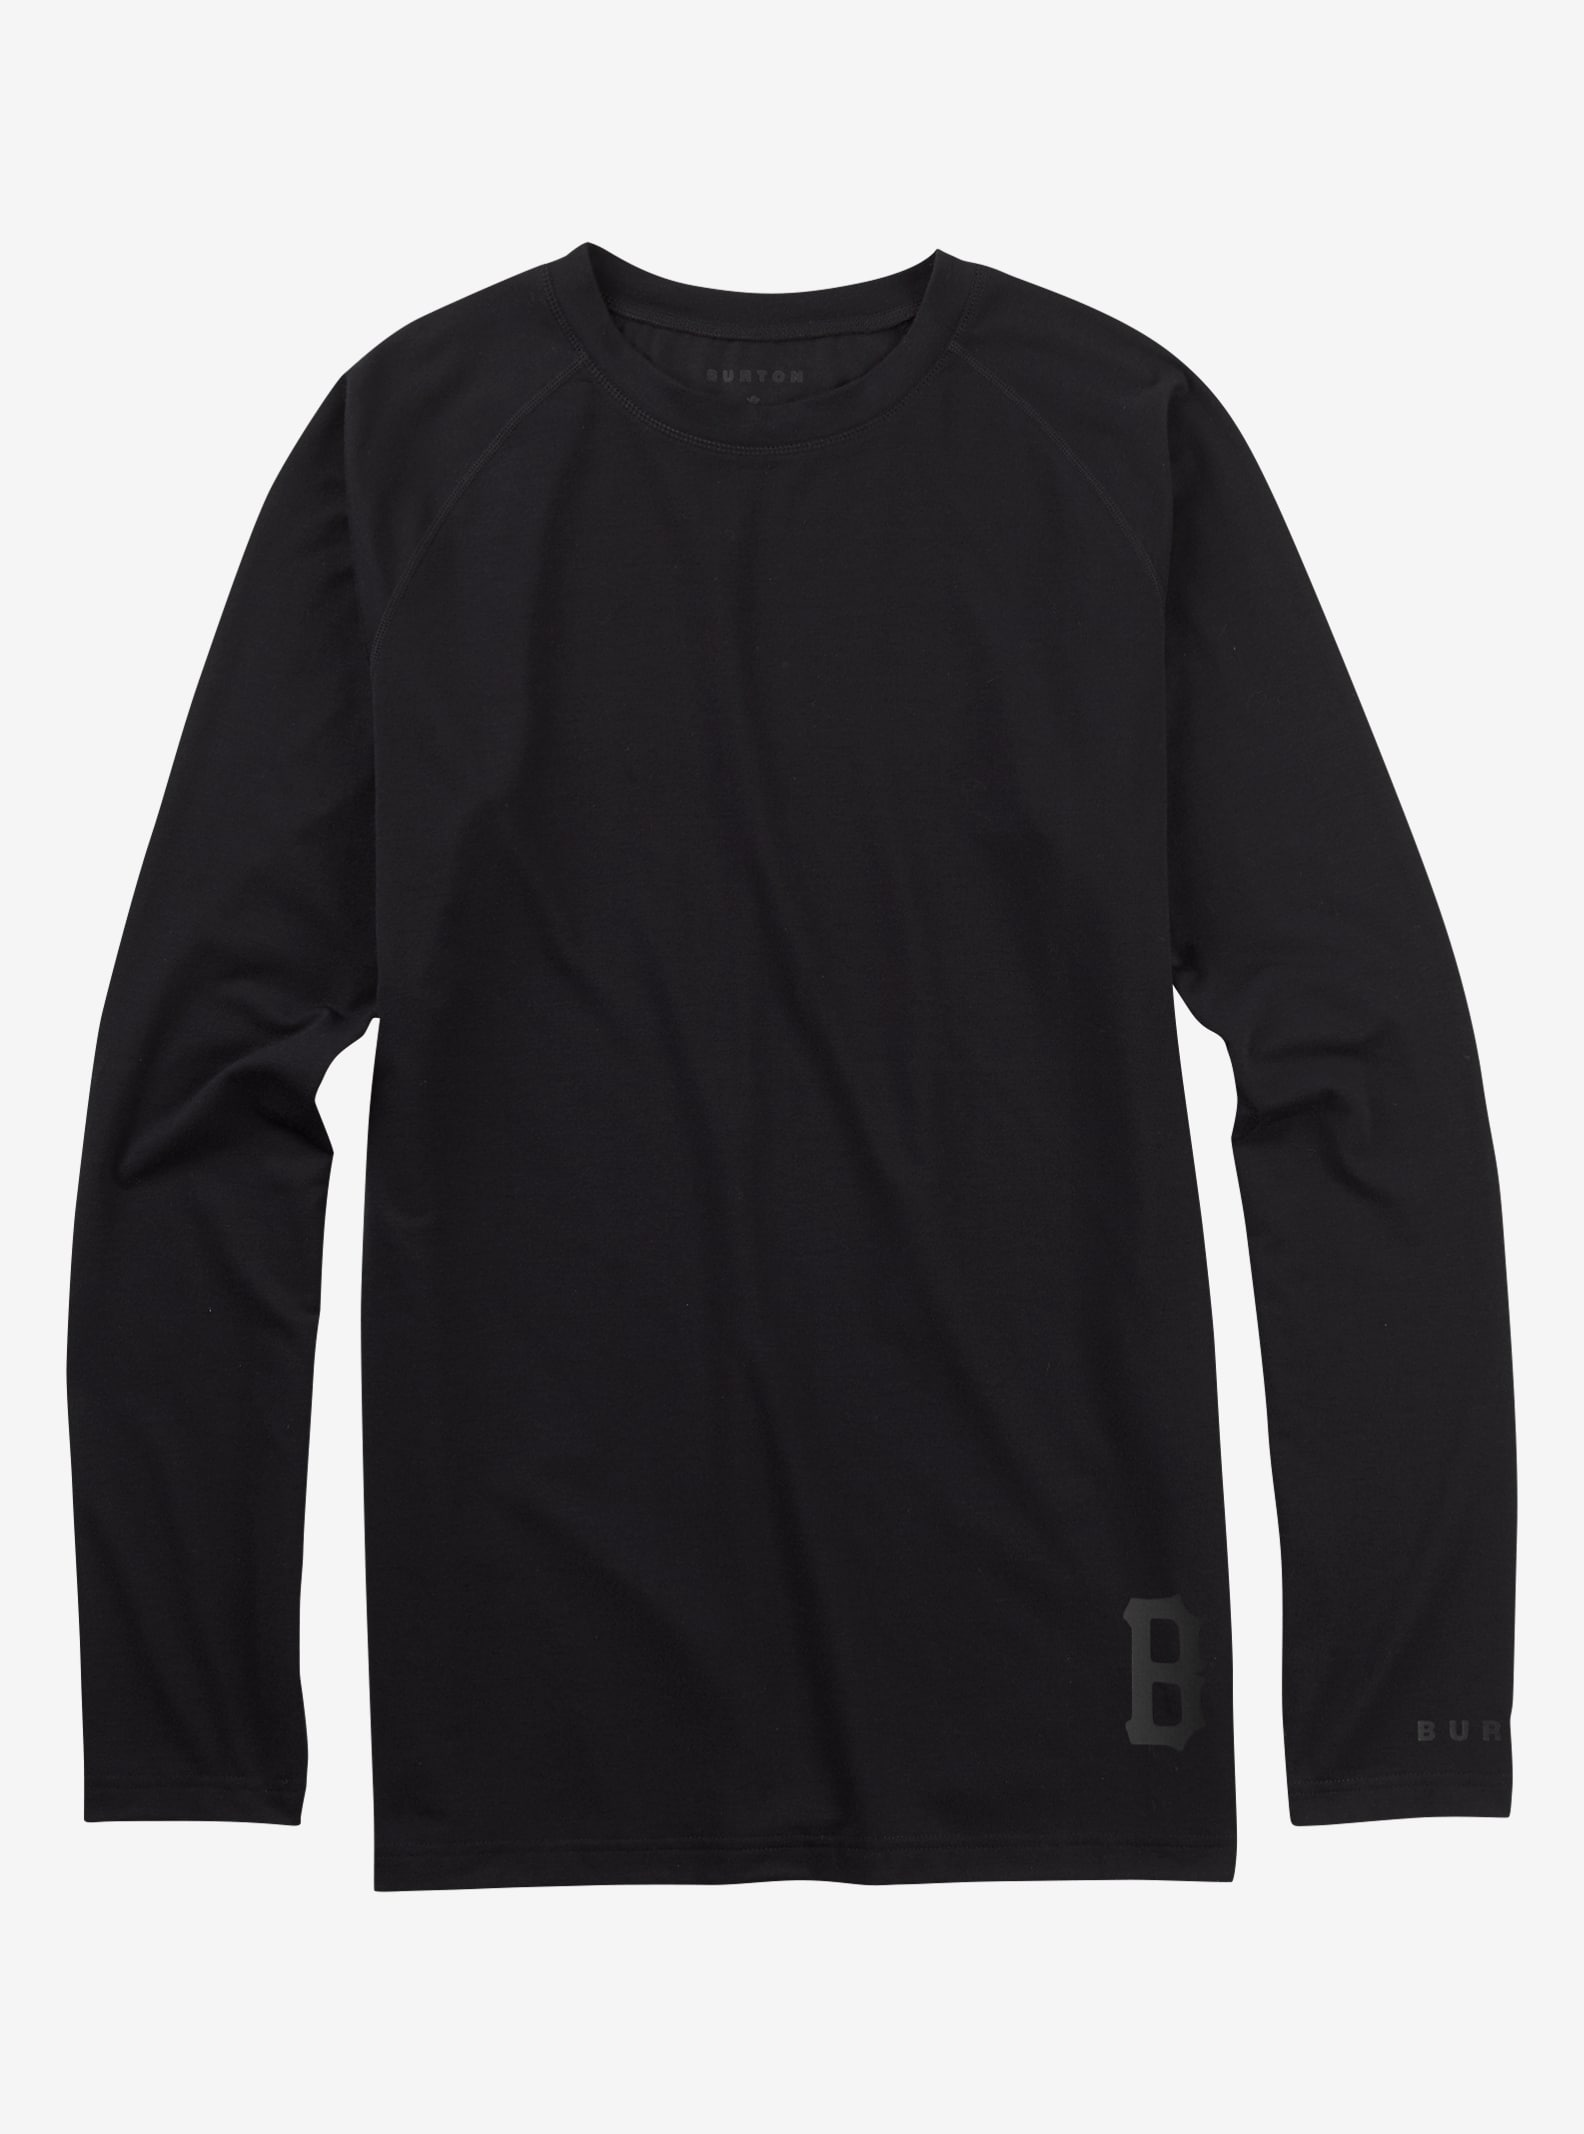 Black Scale x Burton Rescue Base Layer Tech Tee shown in Black Scale Black